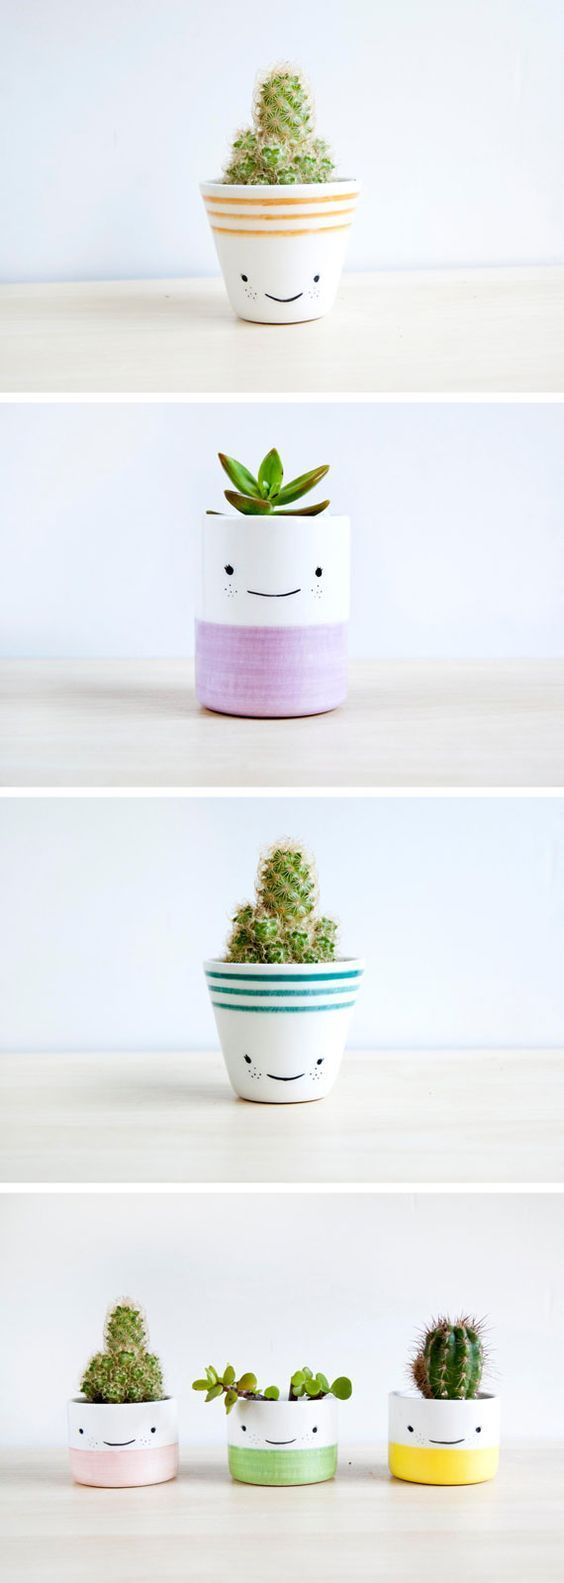 DIY Deko Idee: Mini Blumentopf *** plant pot inspiration | DIY ...